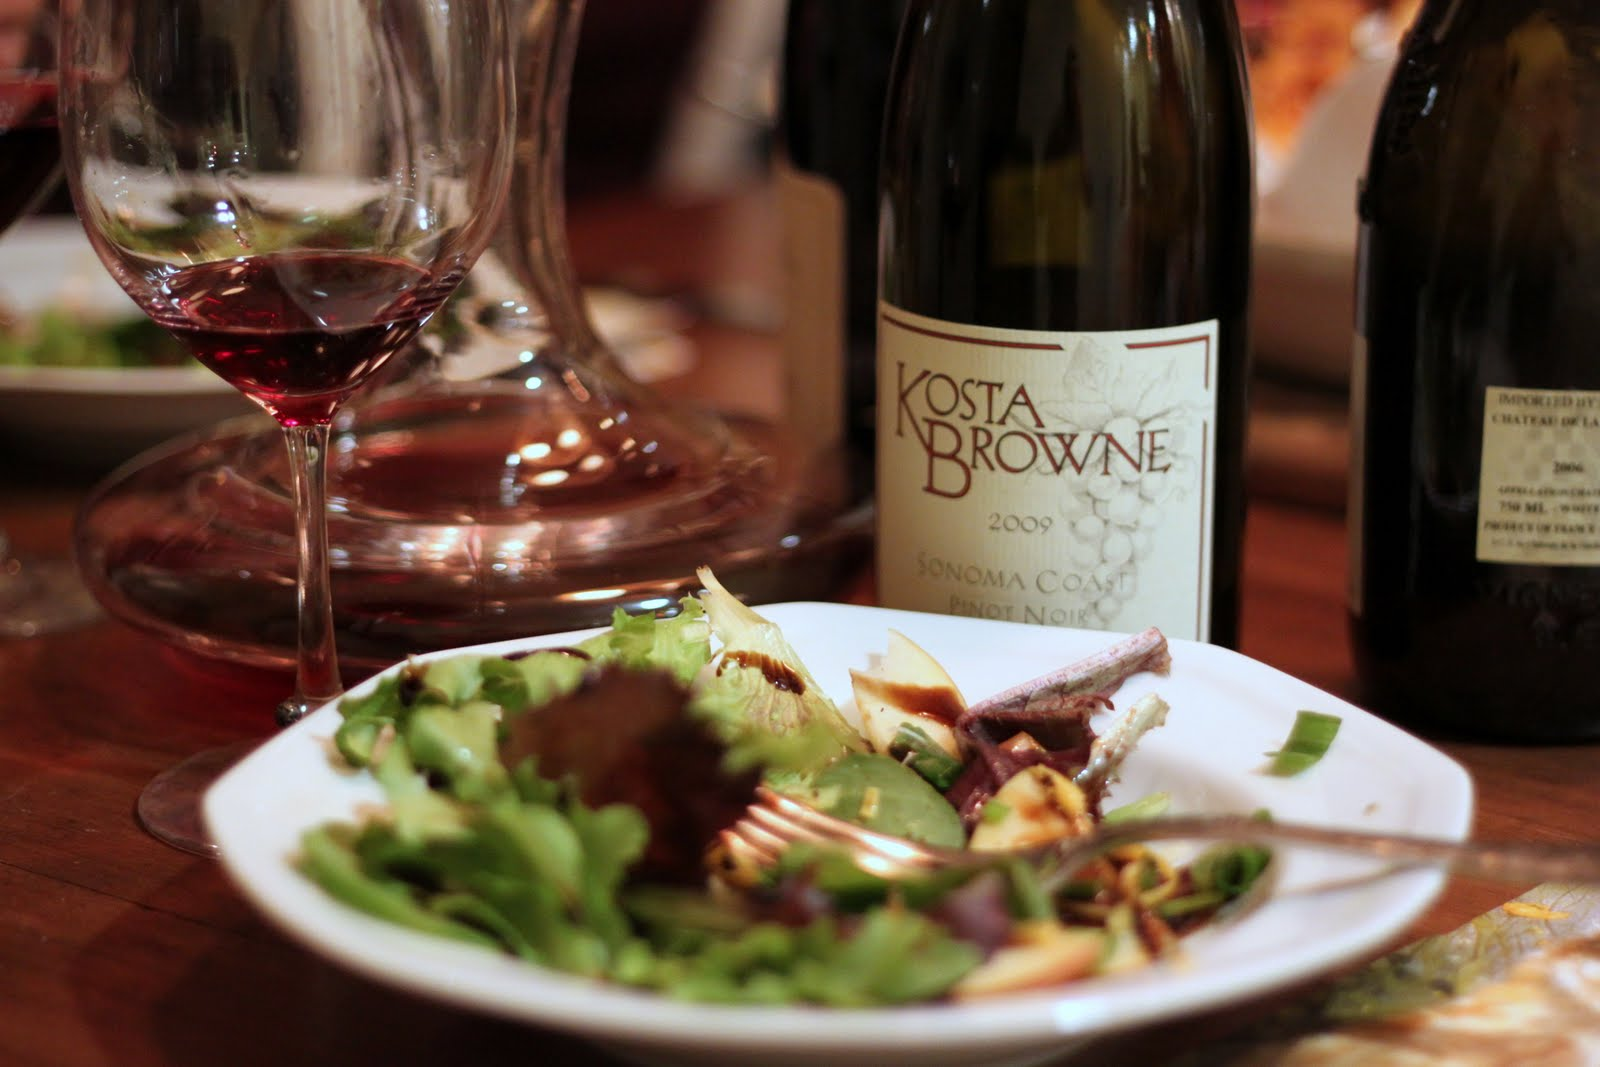 Kosta Browne Announces the Ultimate California Epicurean Experience with the 'Chef Series' Winery Dinners